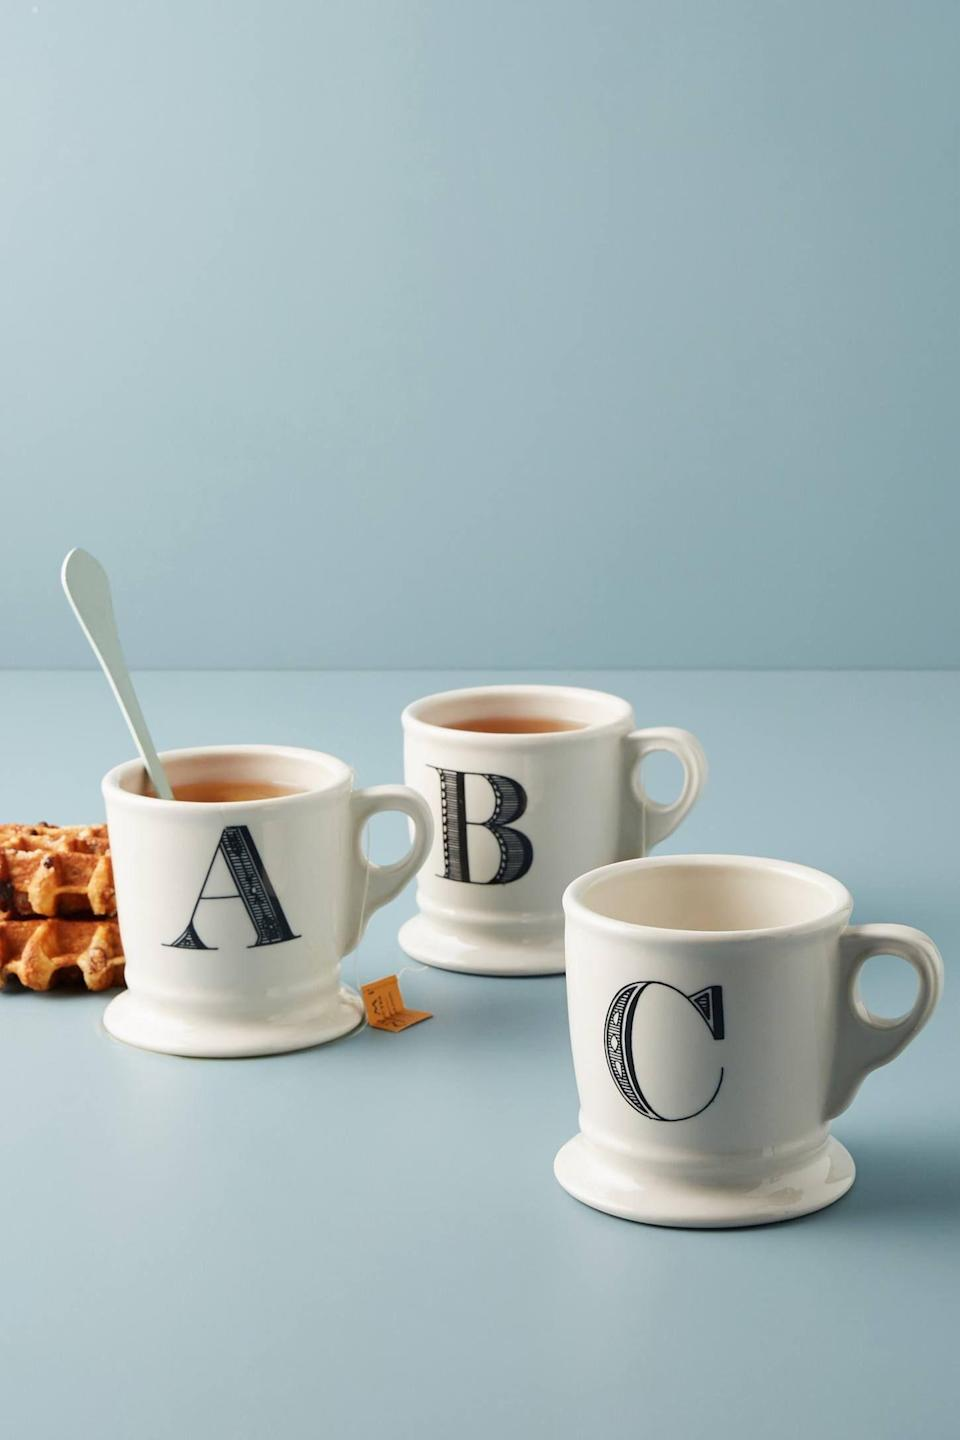 """<p><strong>Anthropologie</strong></p><p>anthropologie.com</p><p><strong>$10.00</strong></p><p><a href=""""https://go.redirectingat.com?id=74968X1596630&url=https%3A%2F%2Fwww.anthropologie.com%2Fshop%2Fmonogram-mug&sref=https%3A%2F%2Fwww.goodhousekeeping.com%2Fholidays%2Fgift-ideas%2Fg1432%2Fteacher-gifts%2F"""" rel=""""nofollow noopener"""" target=""""_blank"""" data-ylk=""""slk:Shop Now"""" class=""""link rapid-noclick-resp"""">Shop Now</a></p><p>Since there are probably plenty of apple-festooned mugs in the cupboard already, opt for this typewriter design instead, which offers a hint of a personal touch. </p>"""